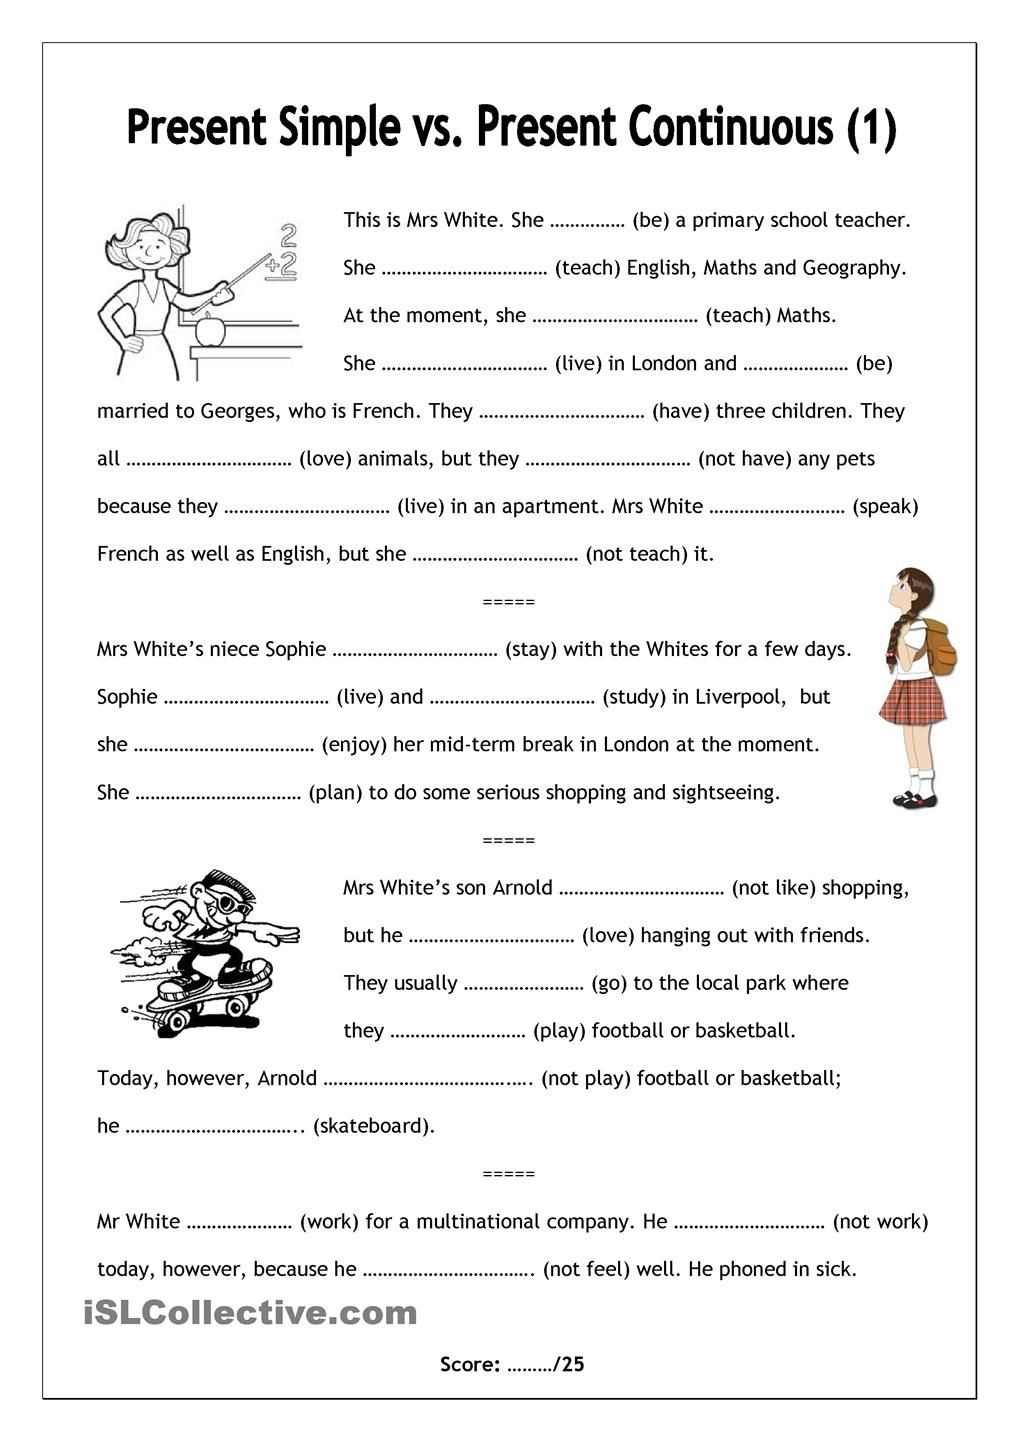 No Frills Worksheet For All Ages Present Simple Vs Present Continuous 1 Inglés Para Secundaria Educacion Ingles Lecciones De Gramática